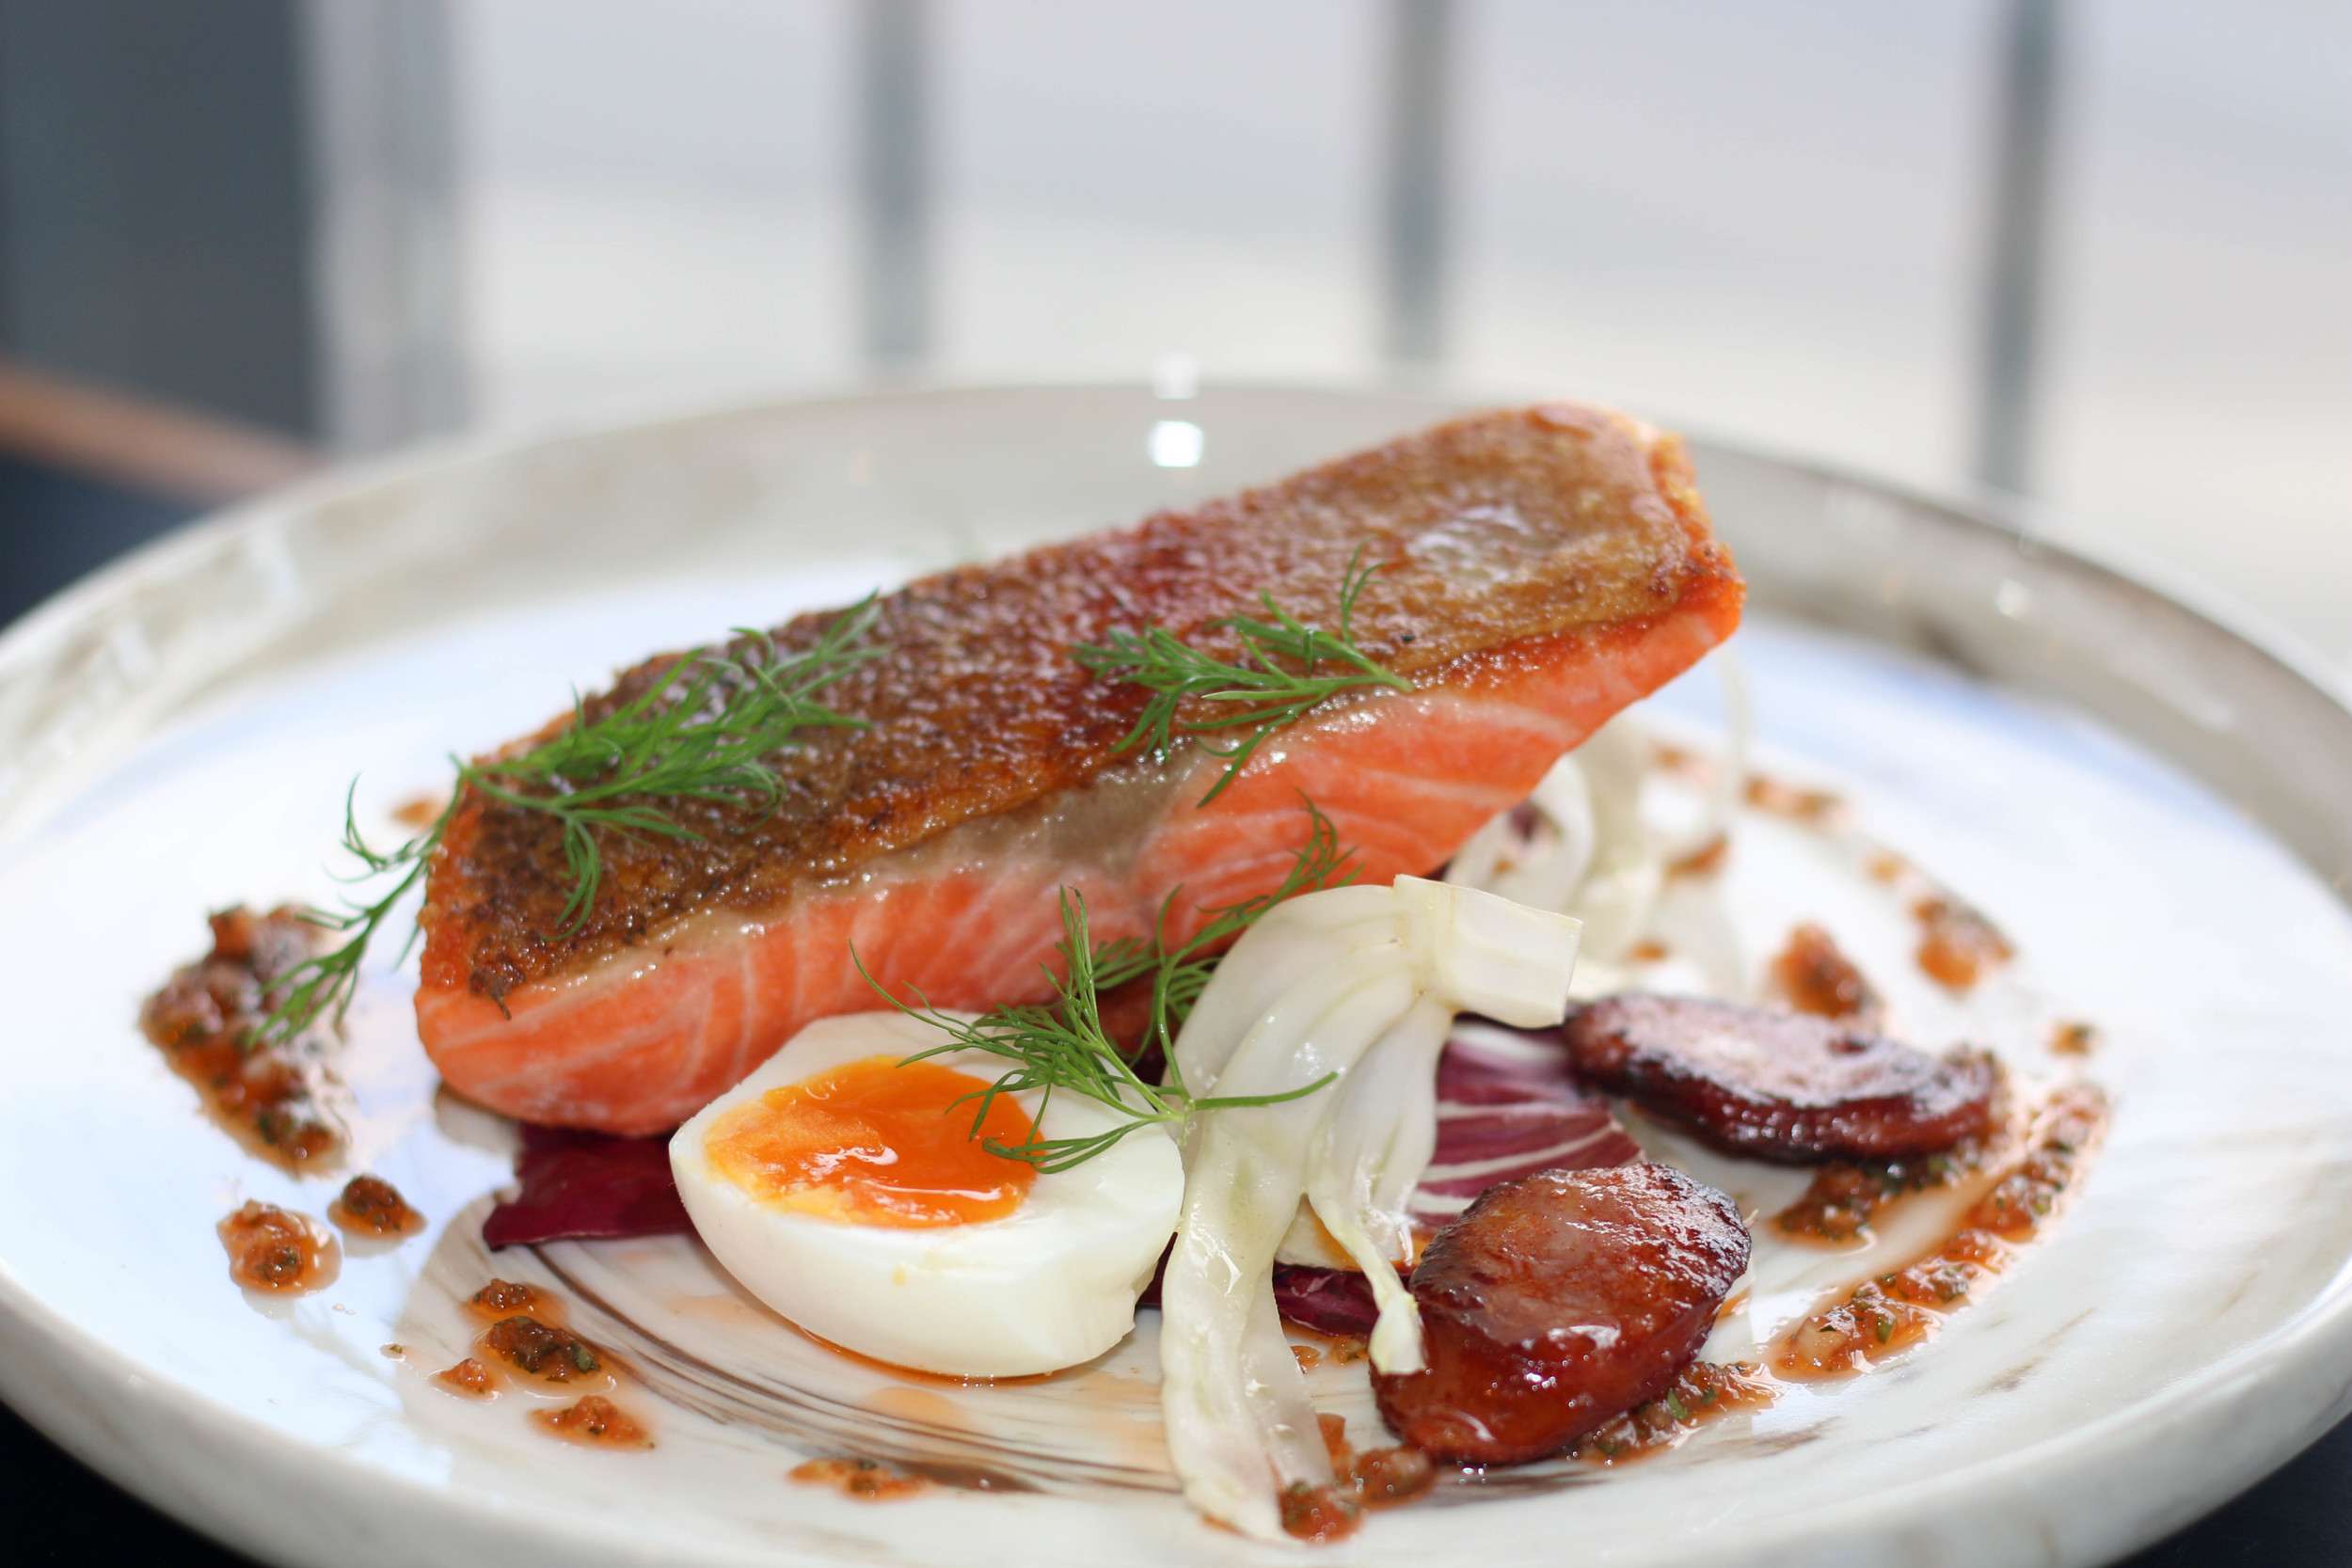 Pan fried ocean trout with fennel and chorizo